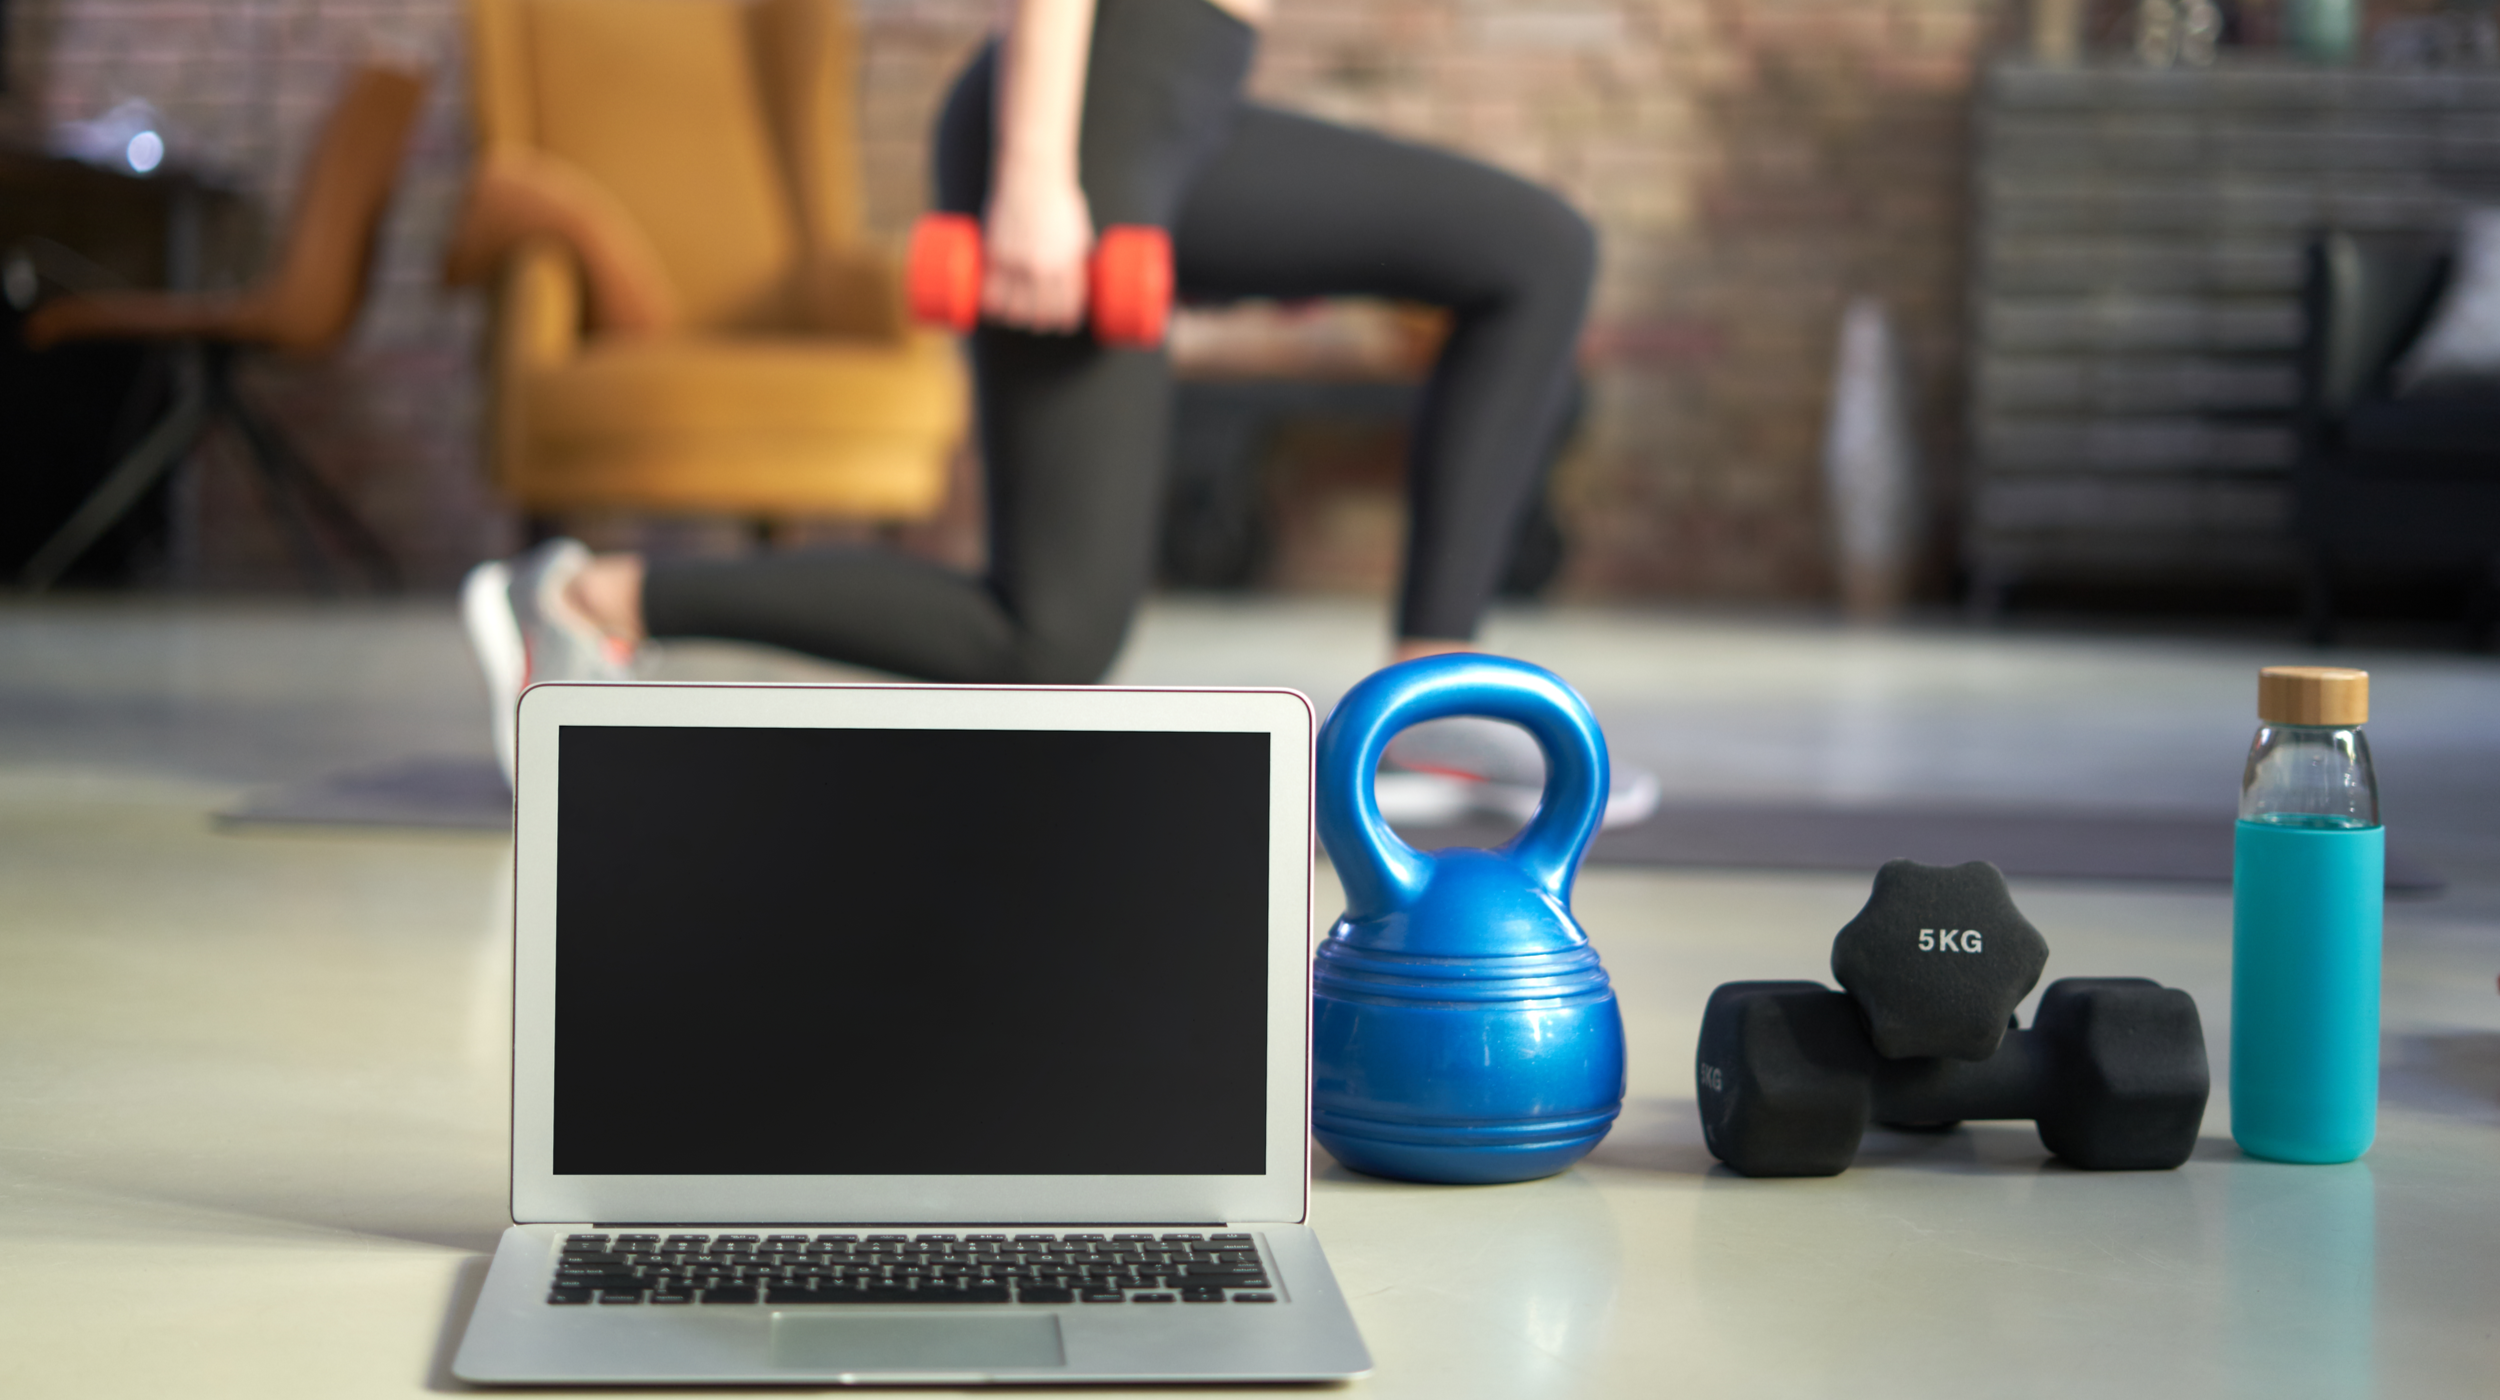 Do You Need Access to a Gym for Resistance Training?